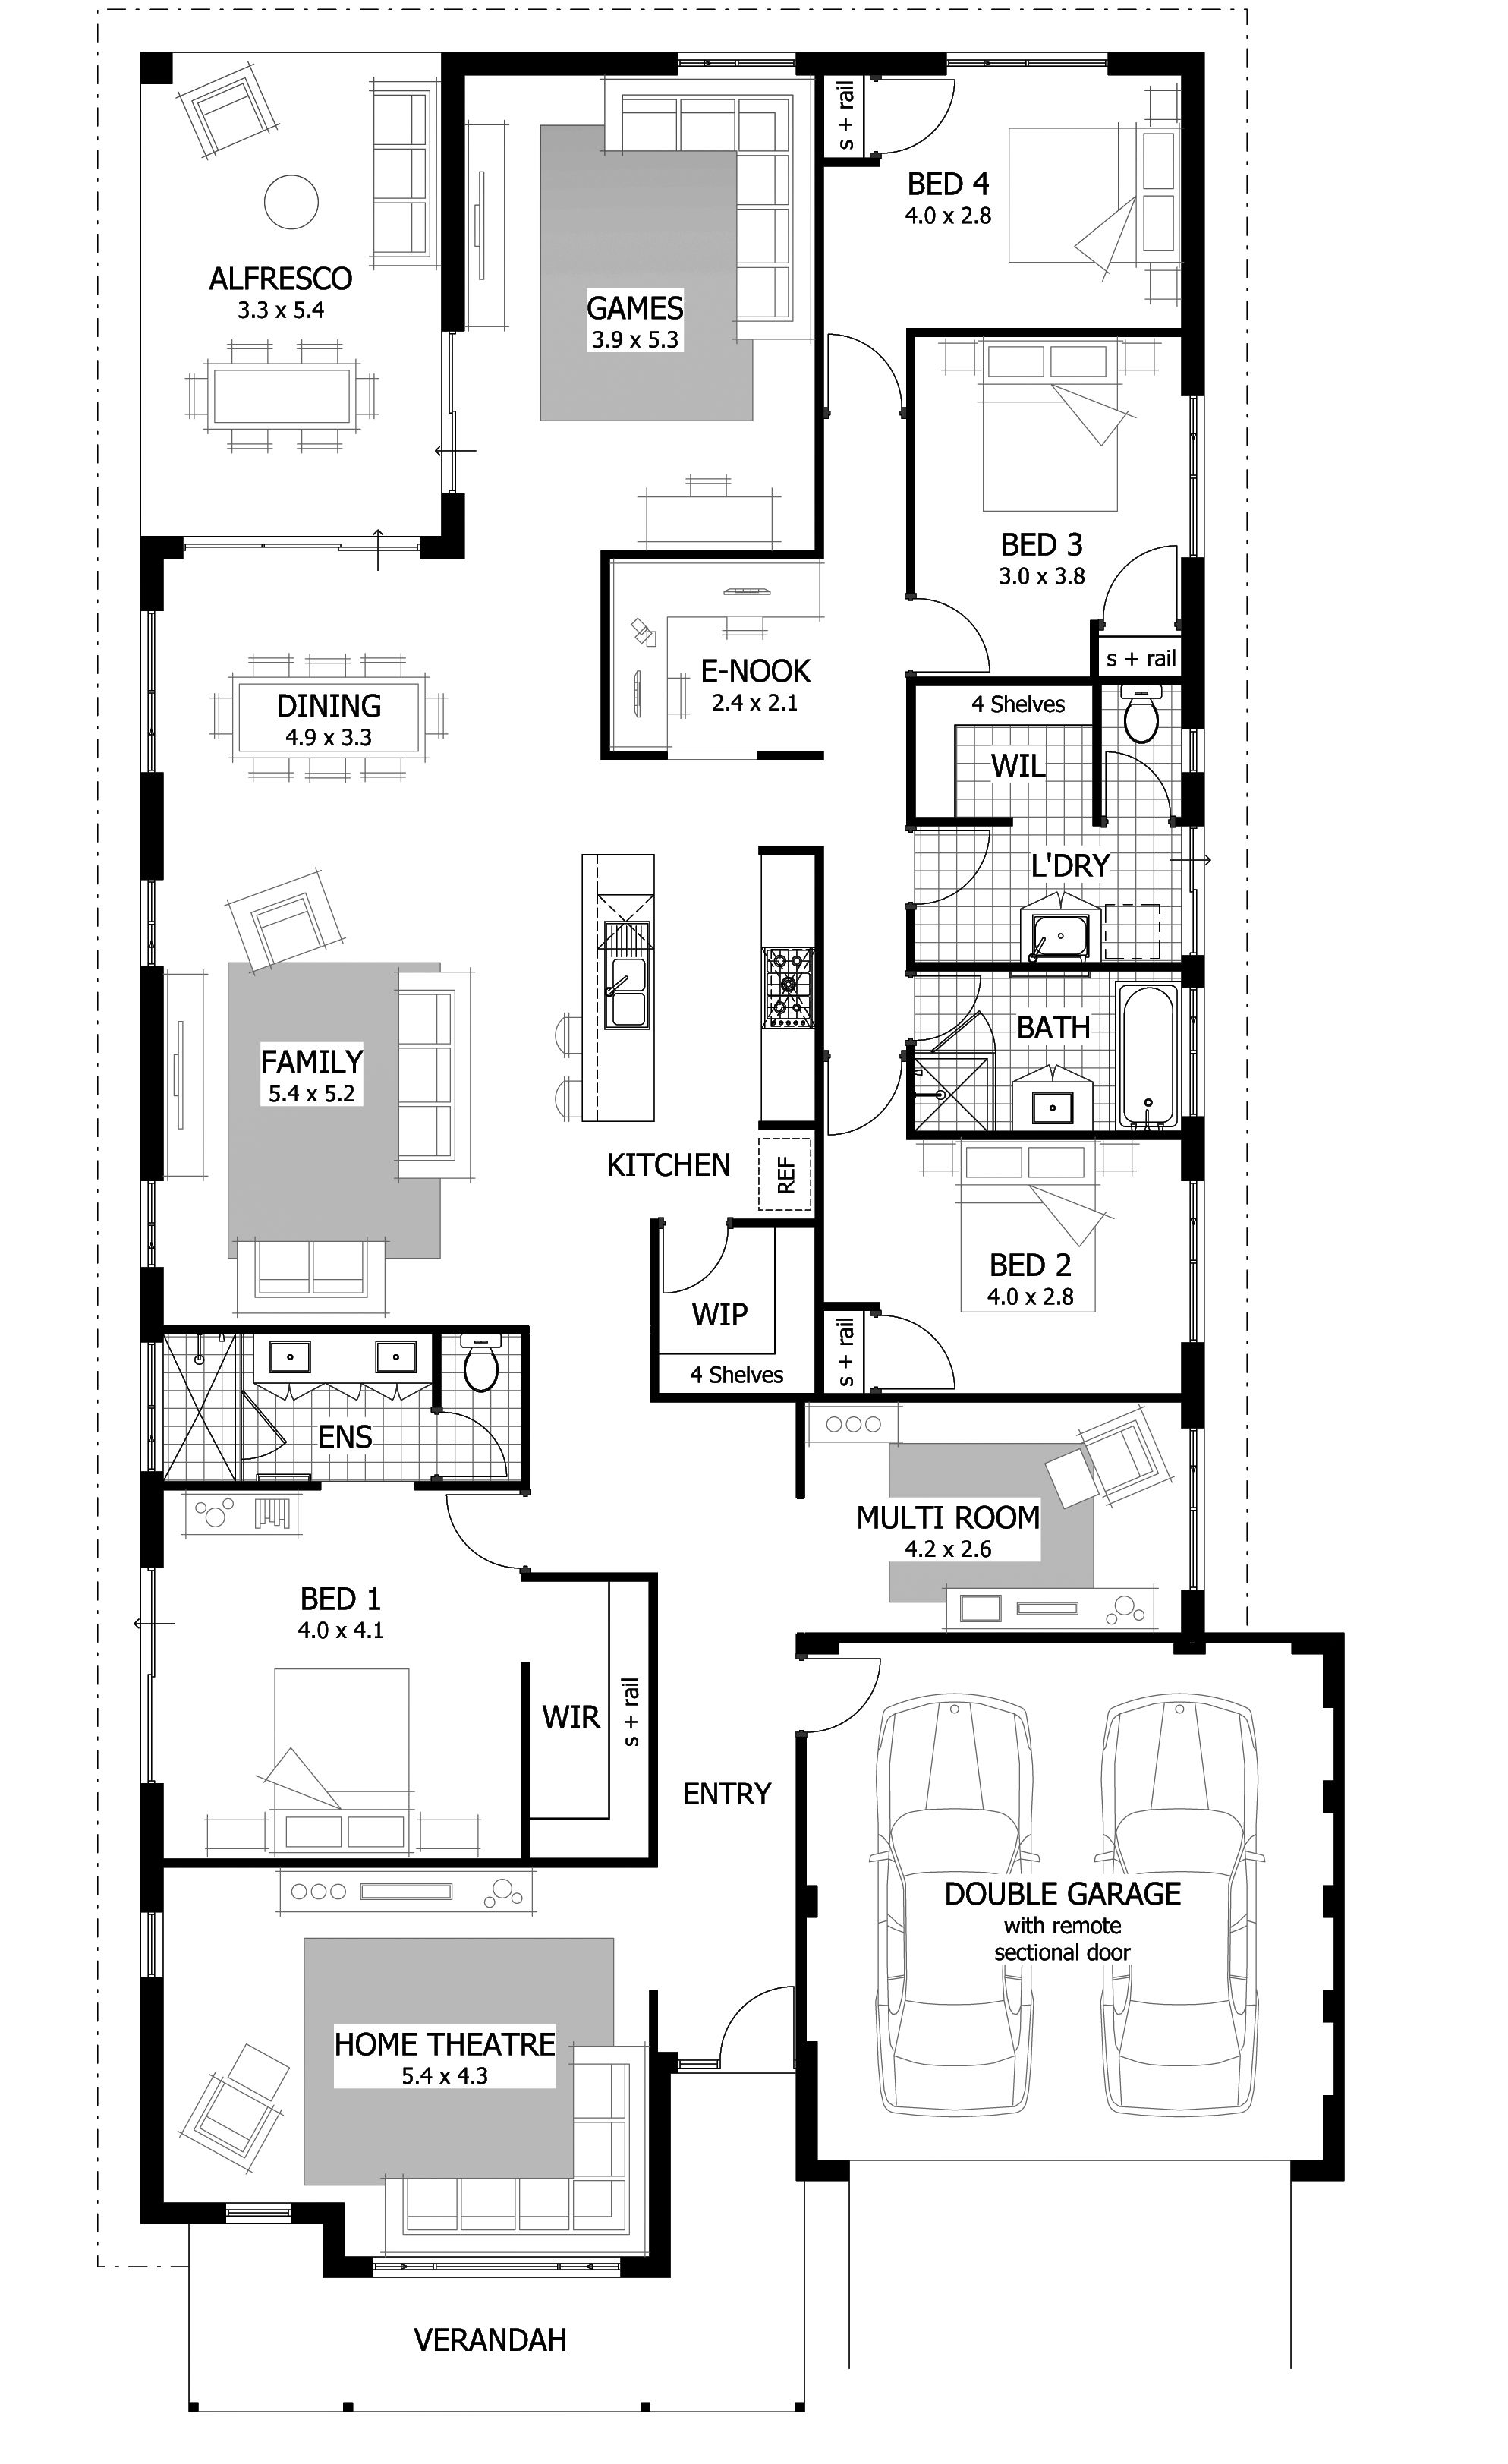 Find A 4 Bedroom Home That S Right For You From Our Current Range Of Home Designs And Plans The Narrow House Plans Rectangle House Plans House Plans One Story